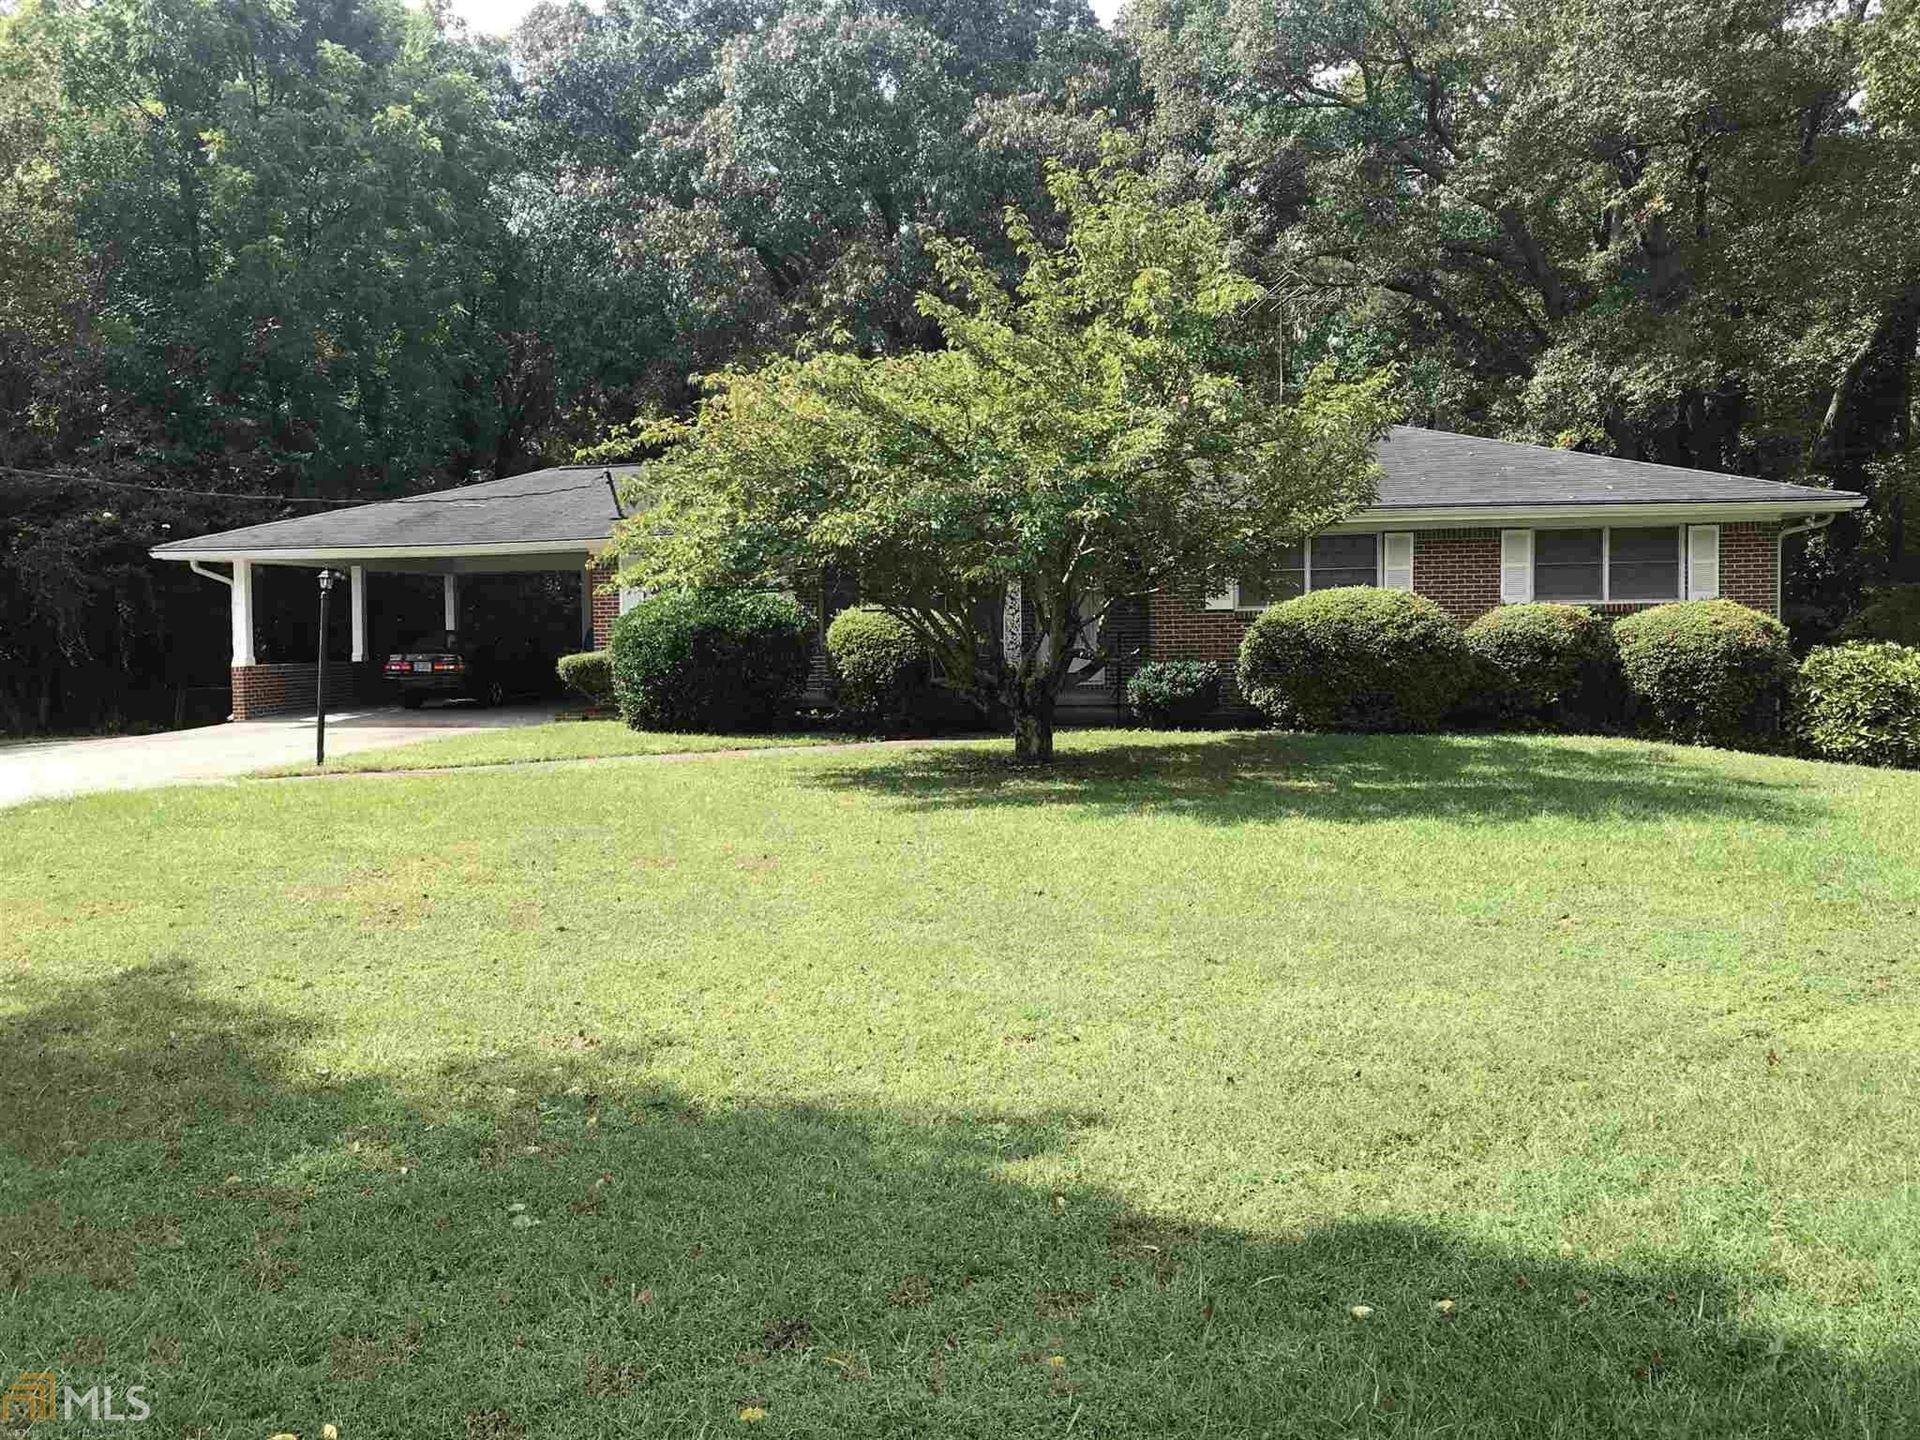 4093 Flat Shoals Pkwy, Decatur, GA 30034 - #: 8864543